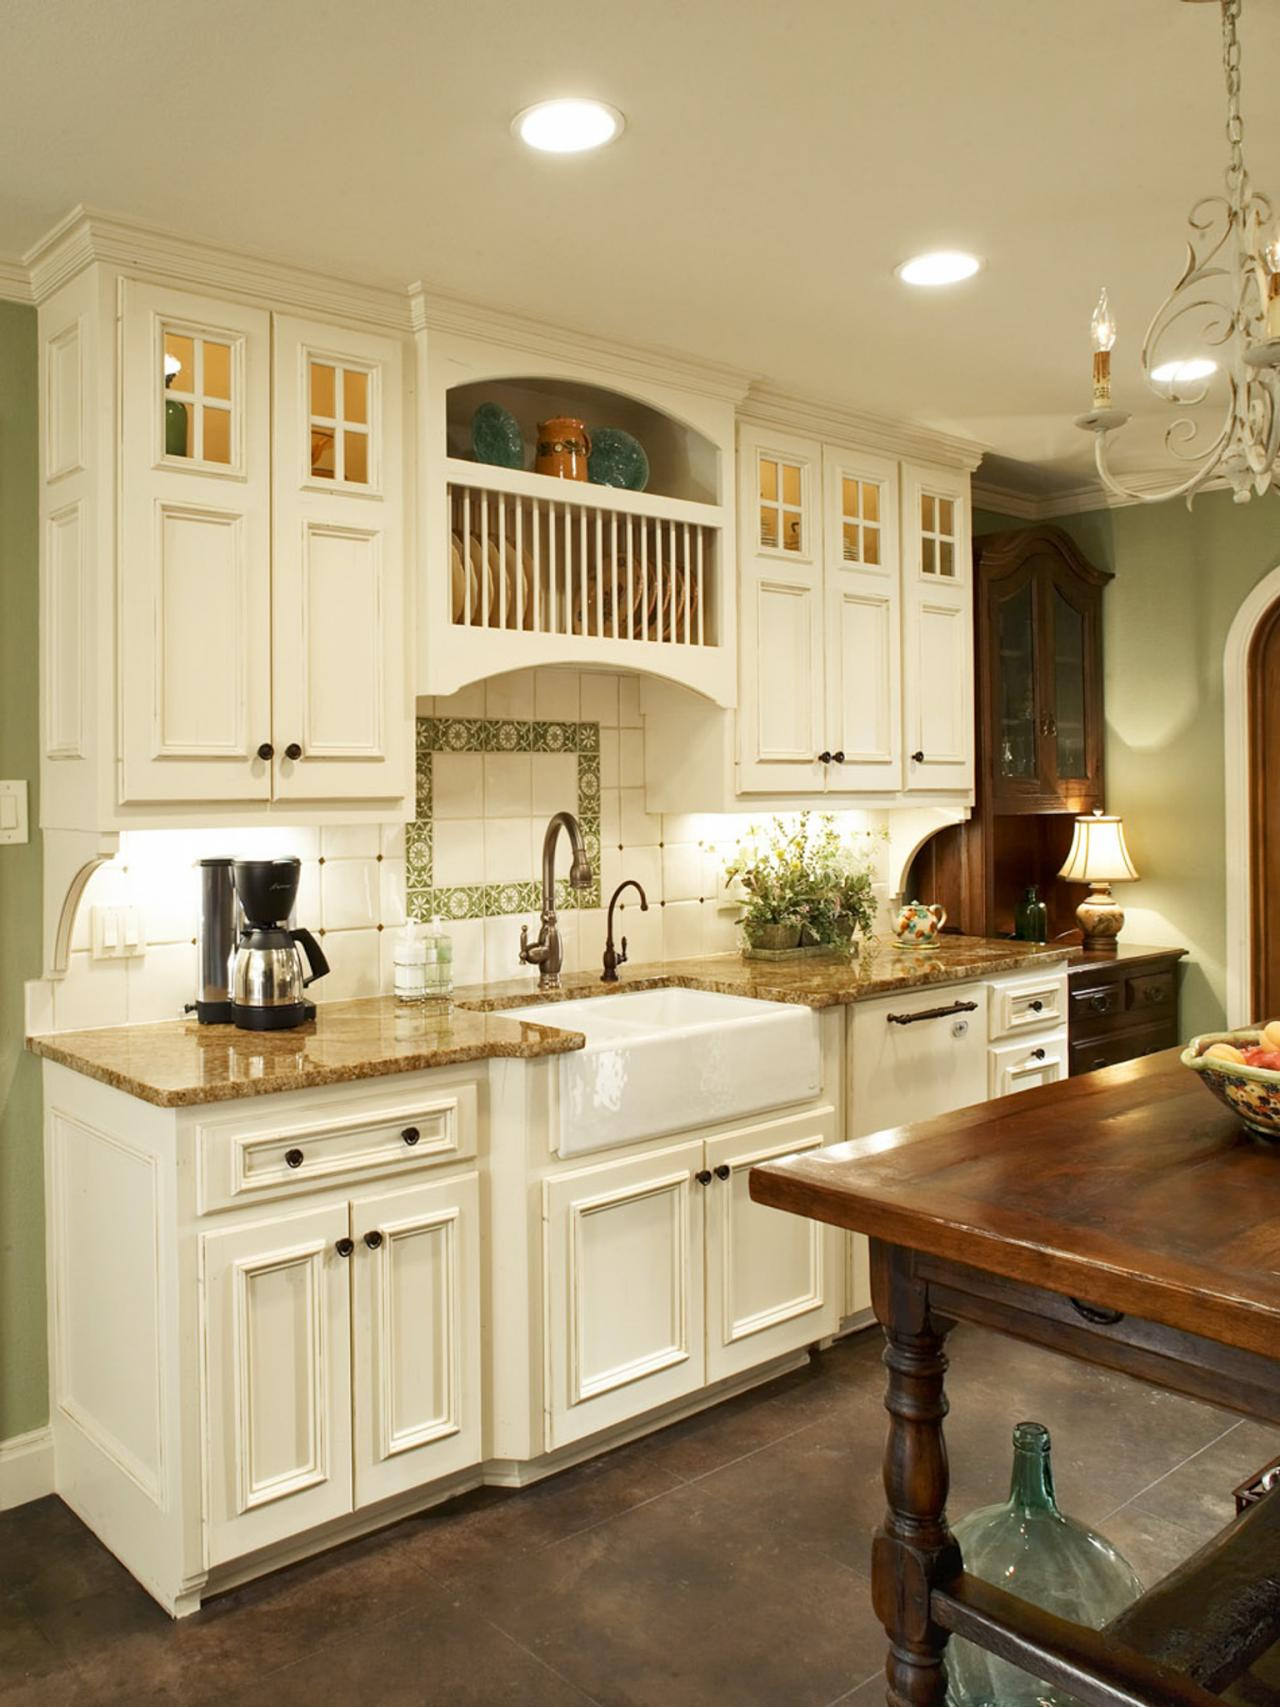 french country kitchen images photo - 6